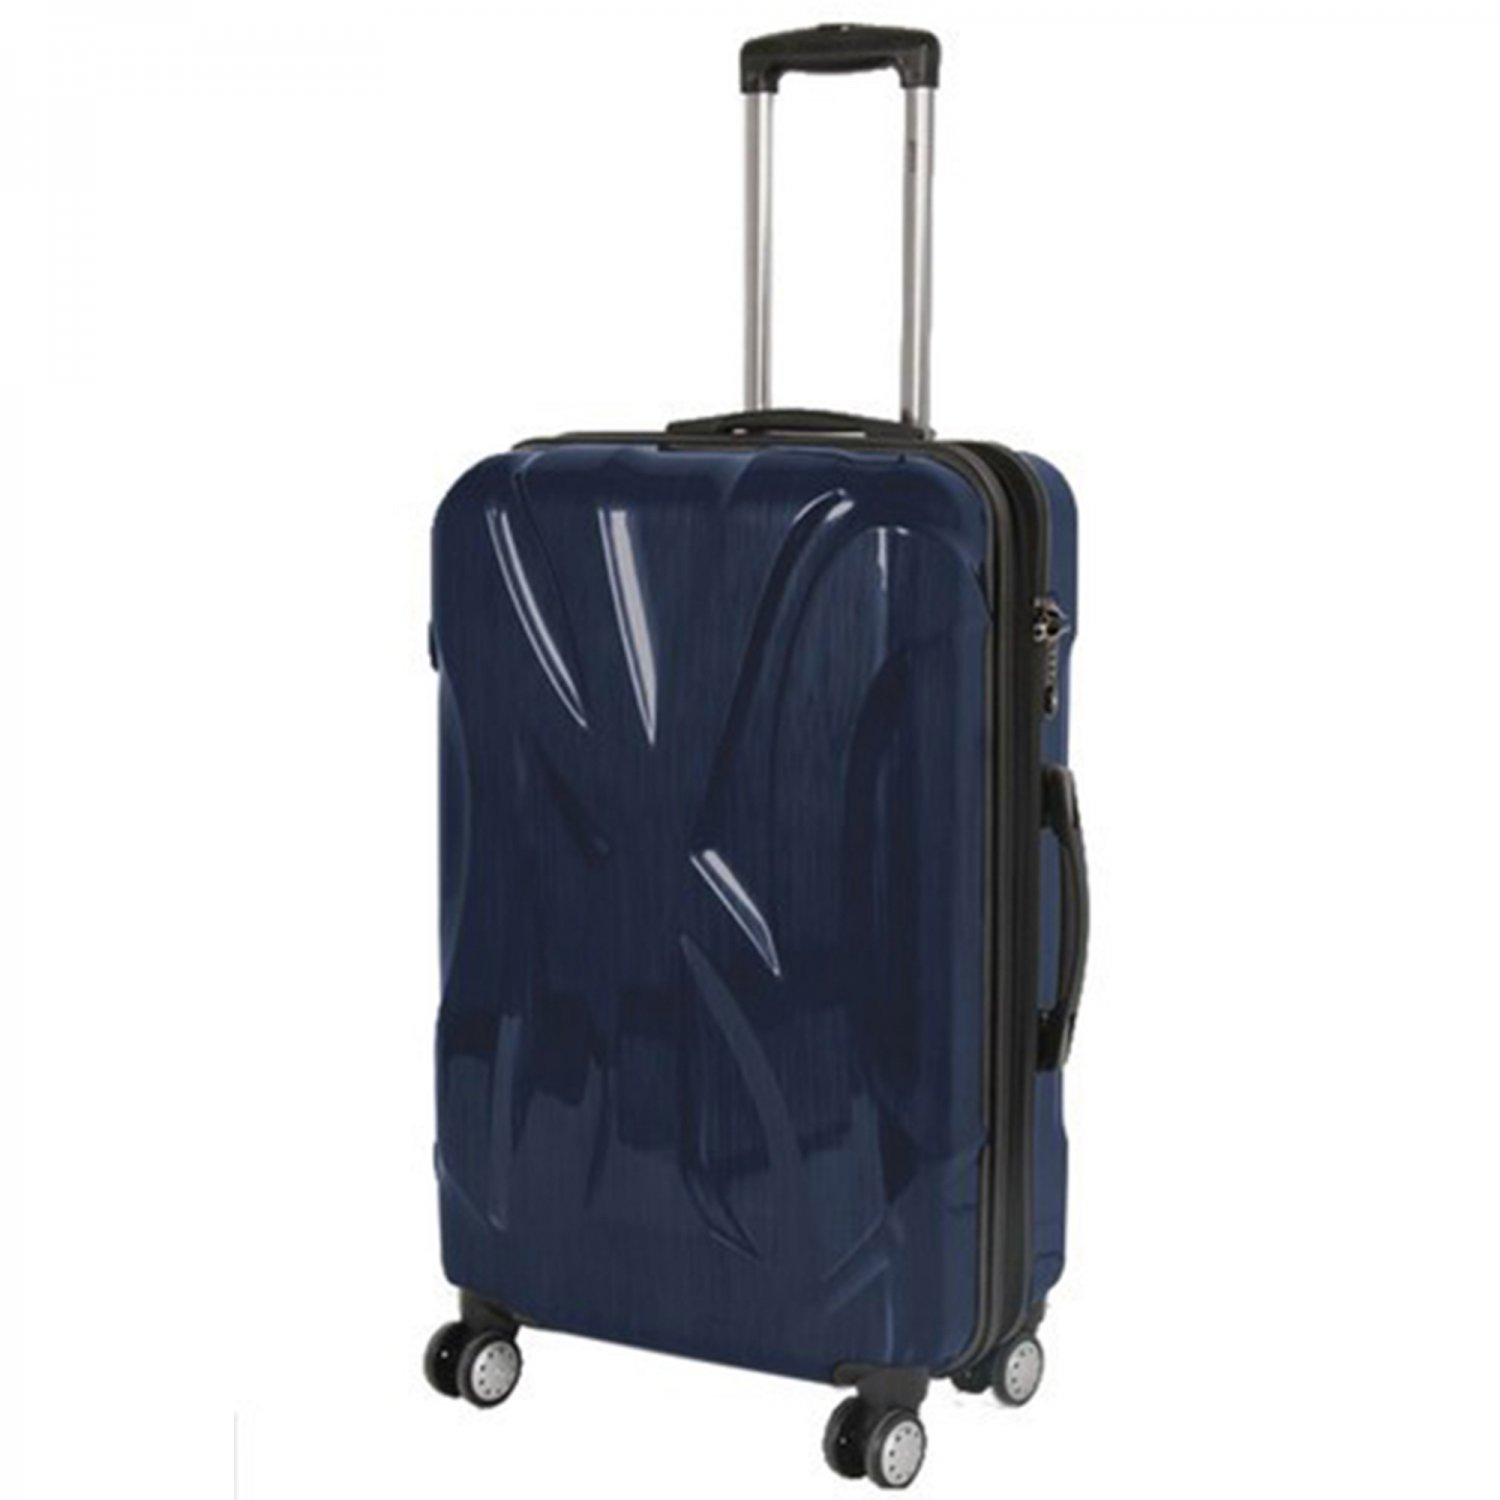 "New York Yankees, 26"" Premium Molded Luggage by Kaybull #NYY-26PCF"